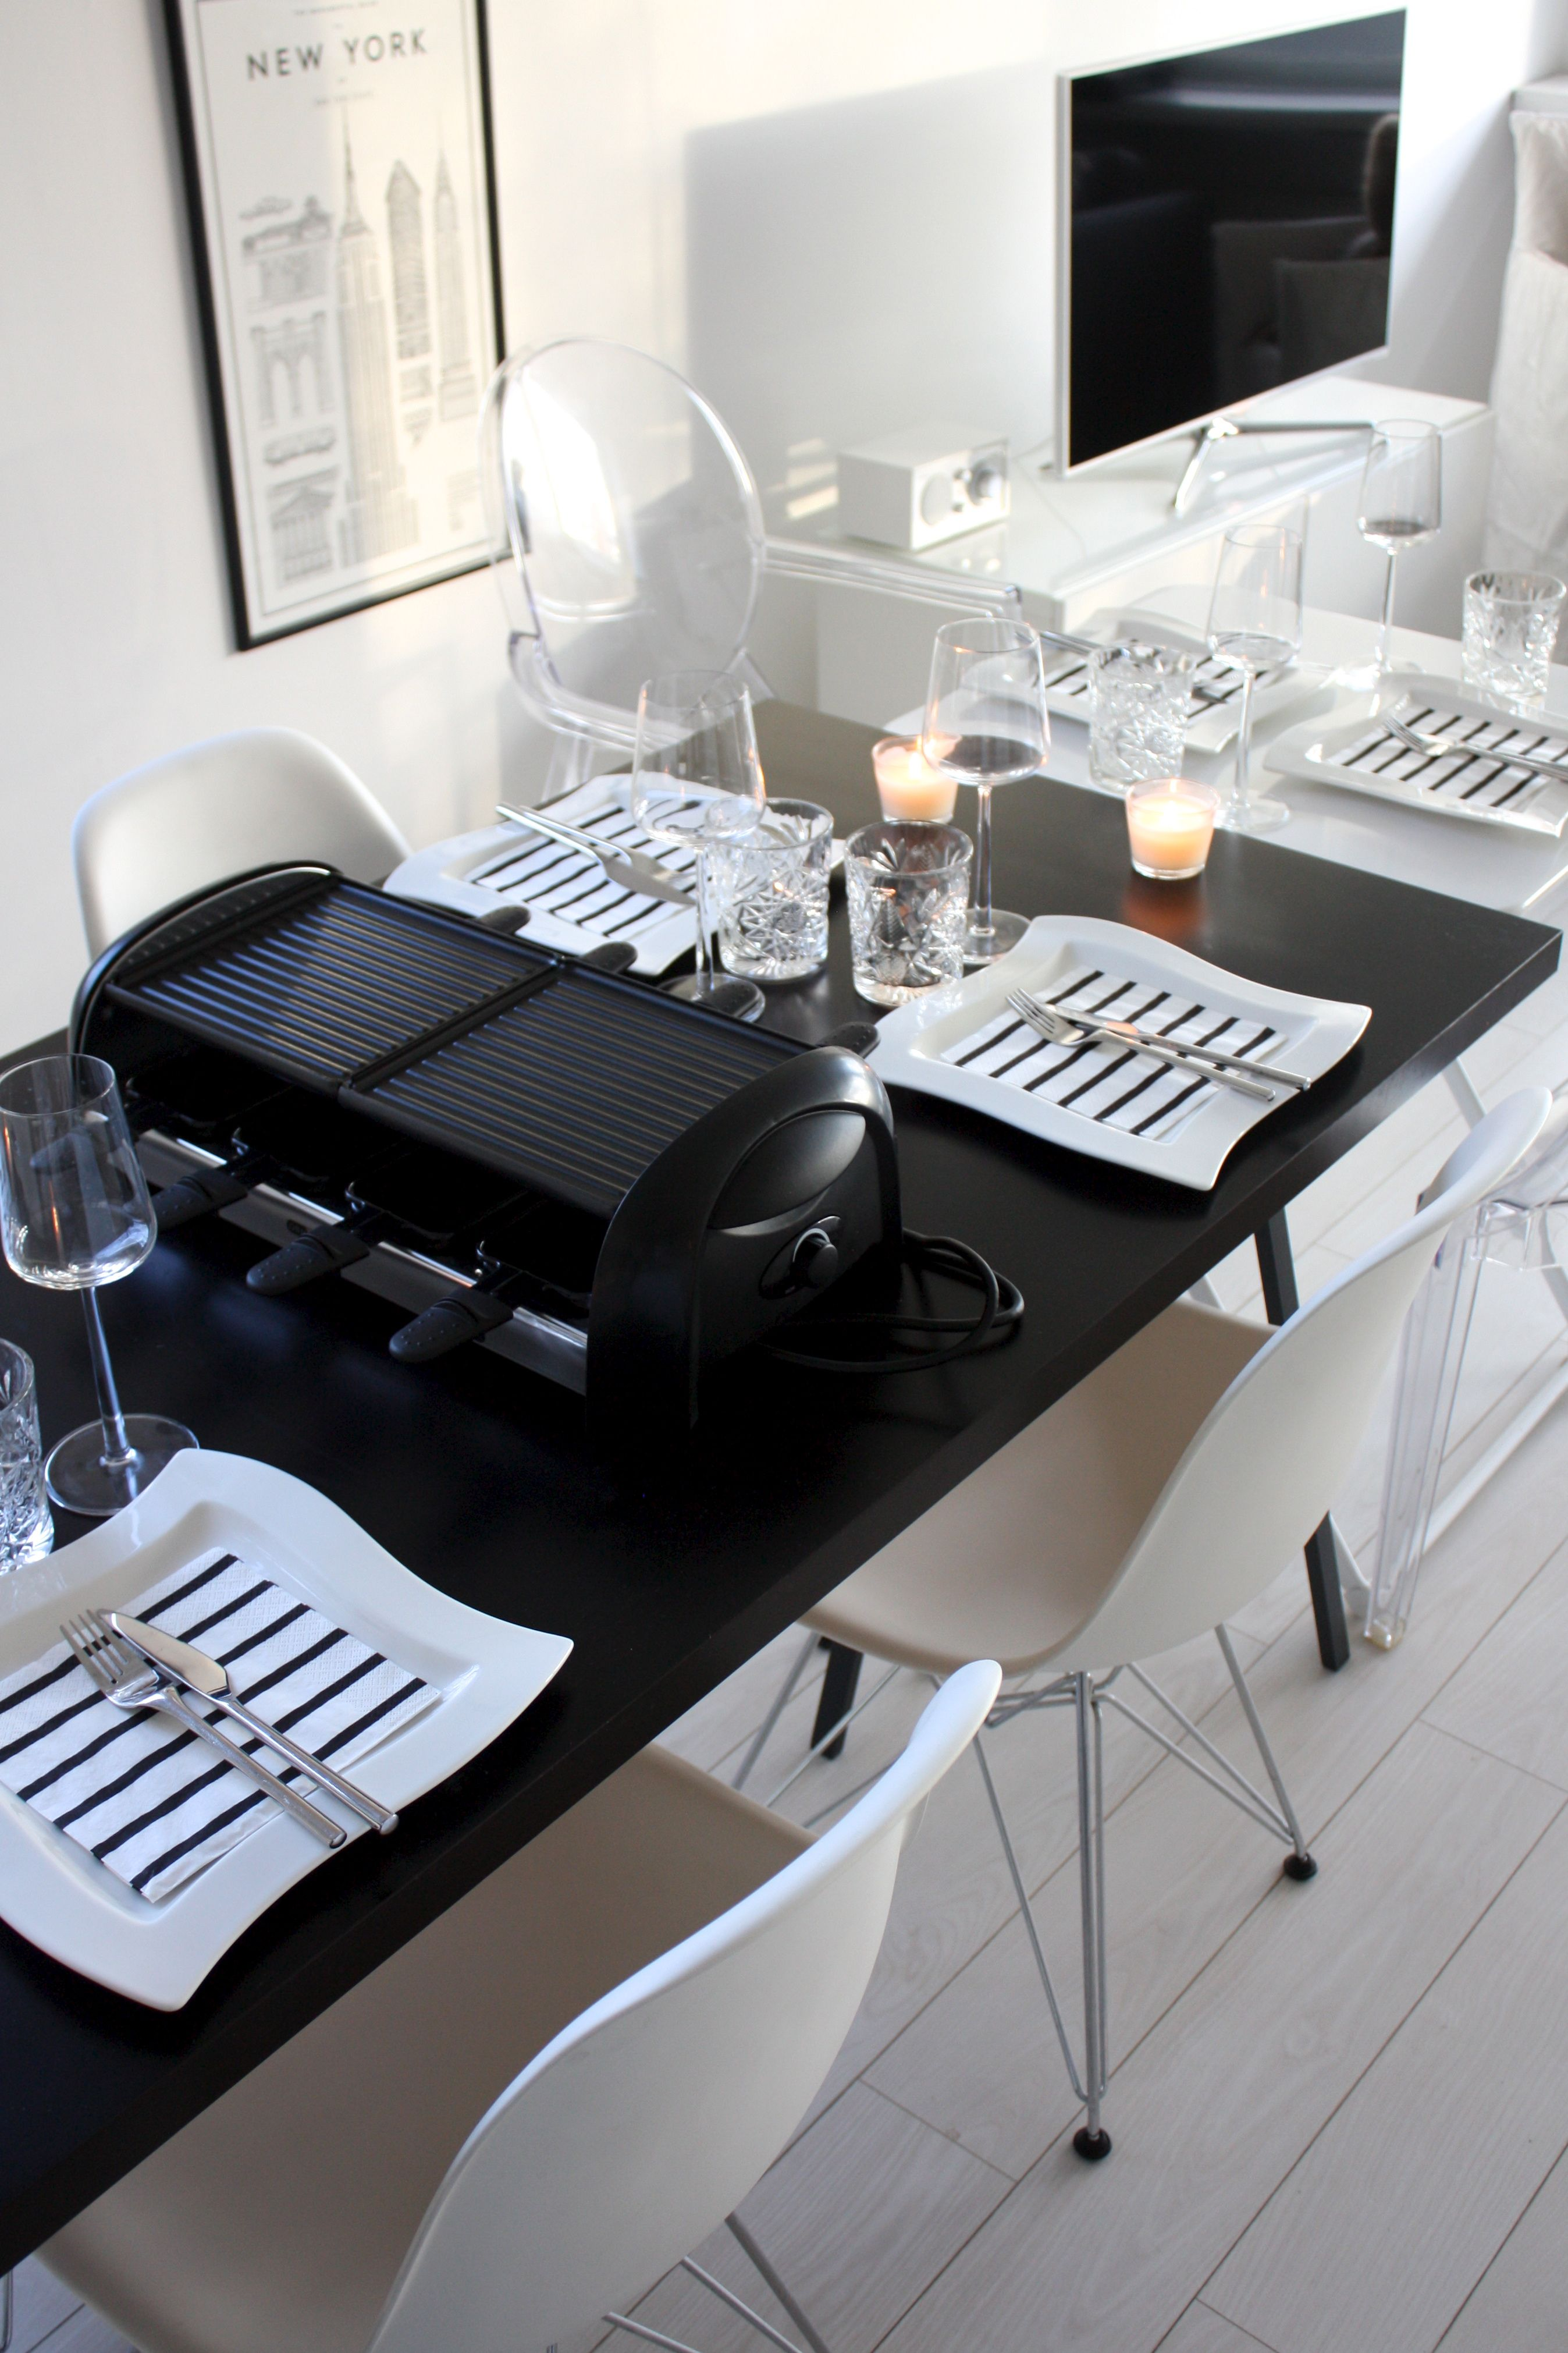 Villeroy and boch new wave set - A Symmetrical Table Setting That Moves Villeroy Boch New Wave Collection Must Haves For The Table Pinterest Beautiful Art And Waves